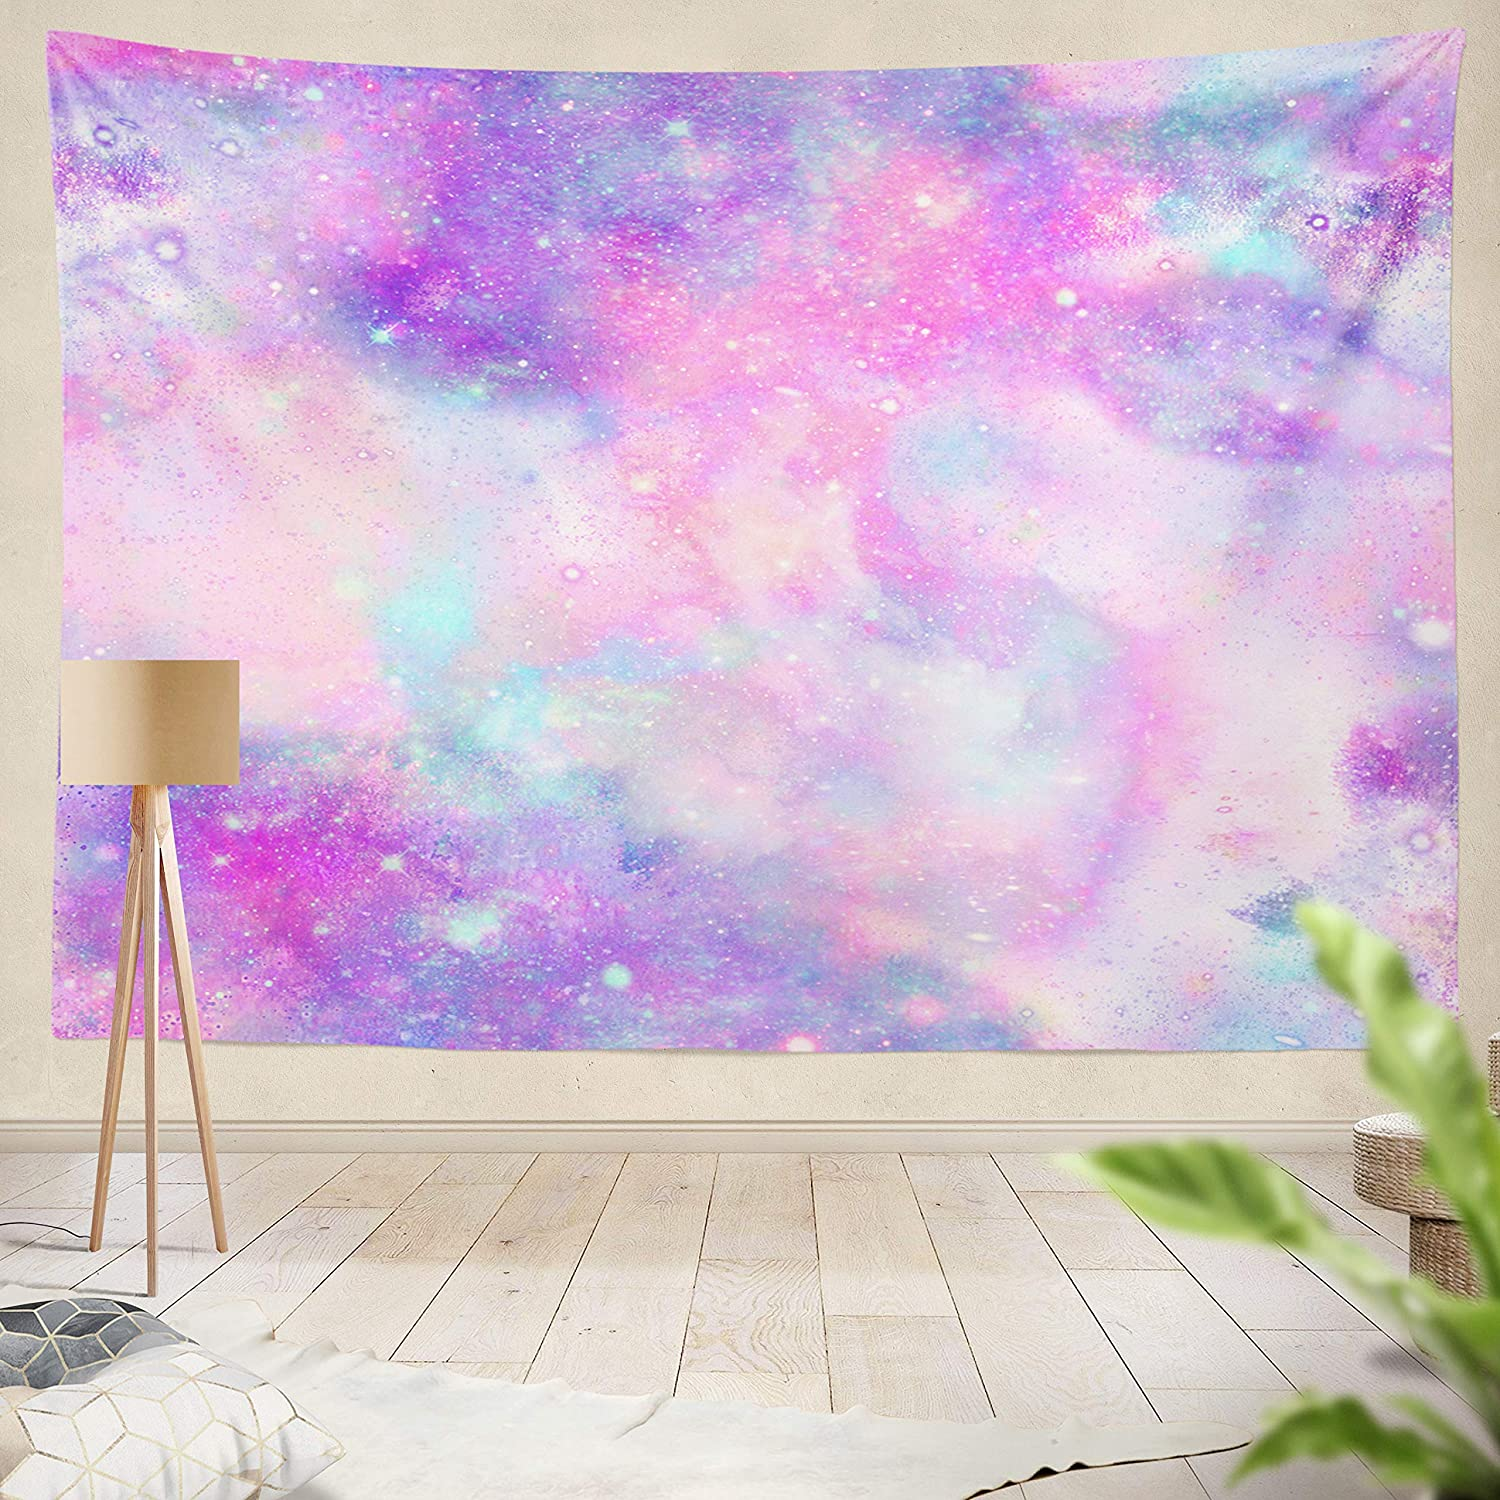 ONELZ Decor Collection, Marbled Galaxy Galaxy Pink Purple Repeat Abstract  Blue Bright Color Colorful Bedroom Living Room Dorm Wall Hanging Tapestry  50 ...